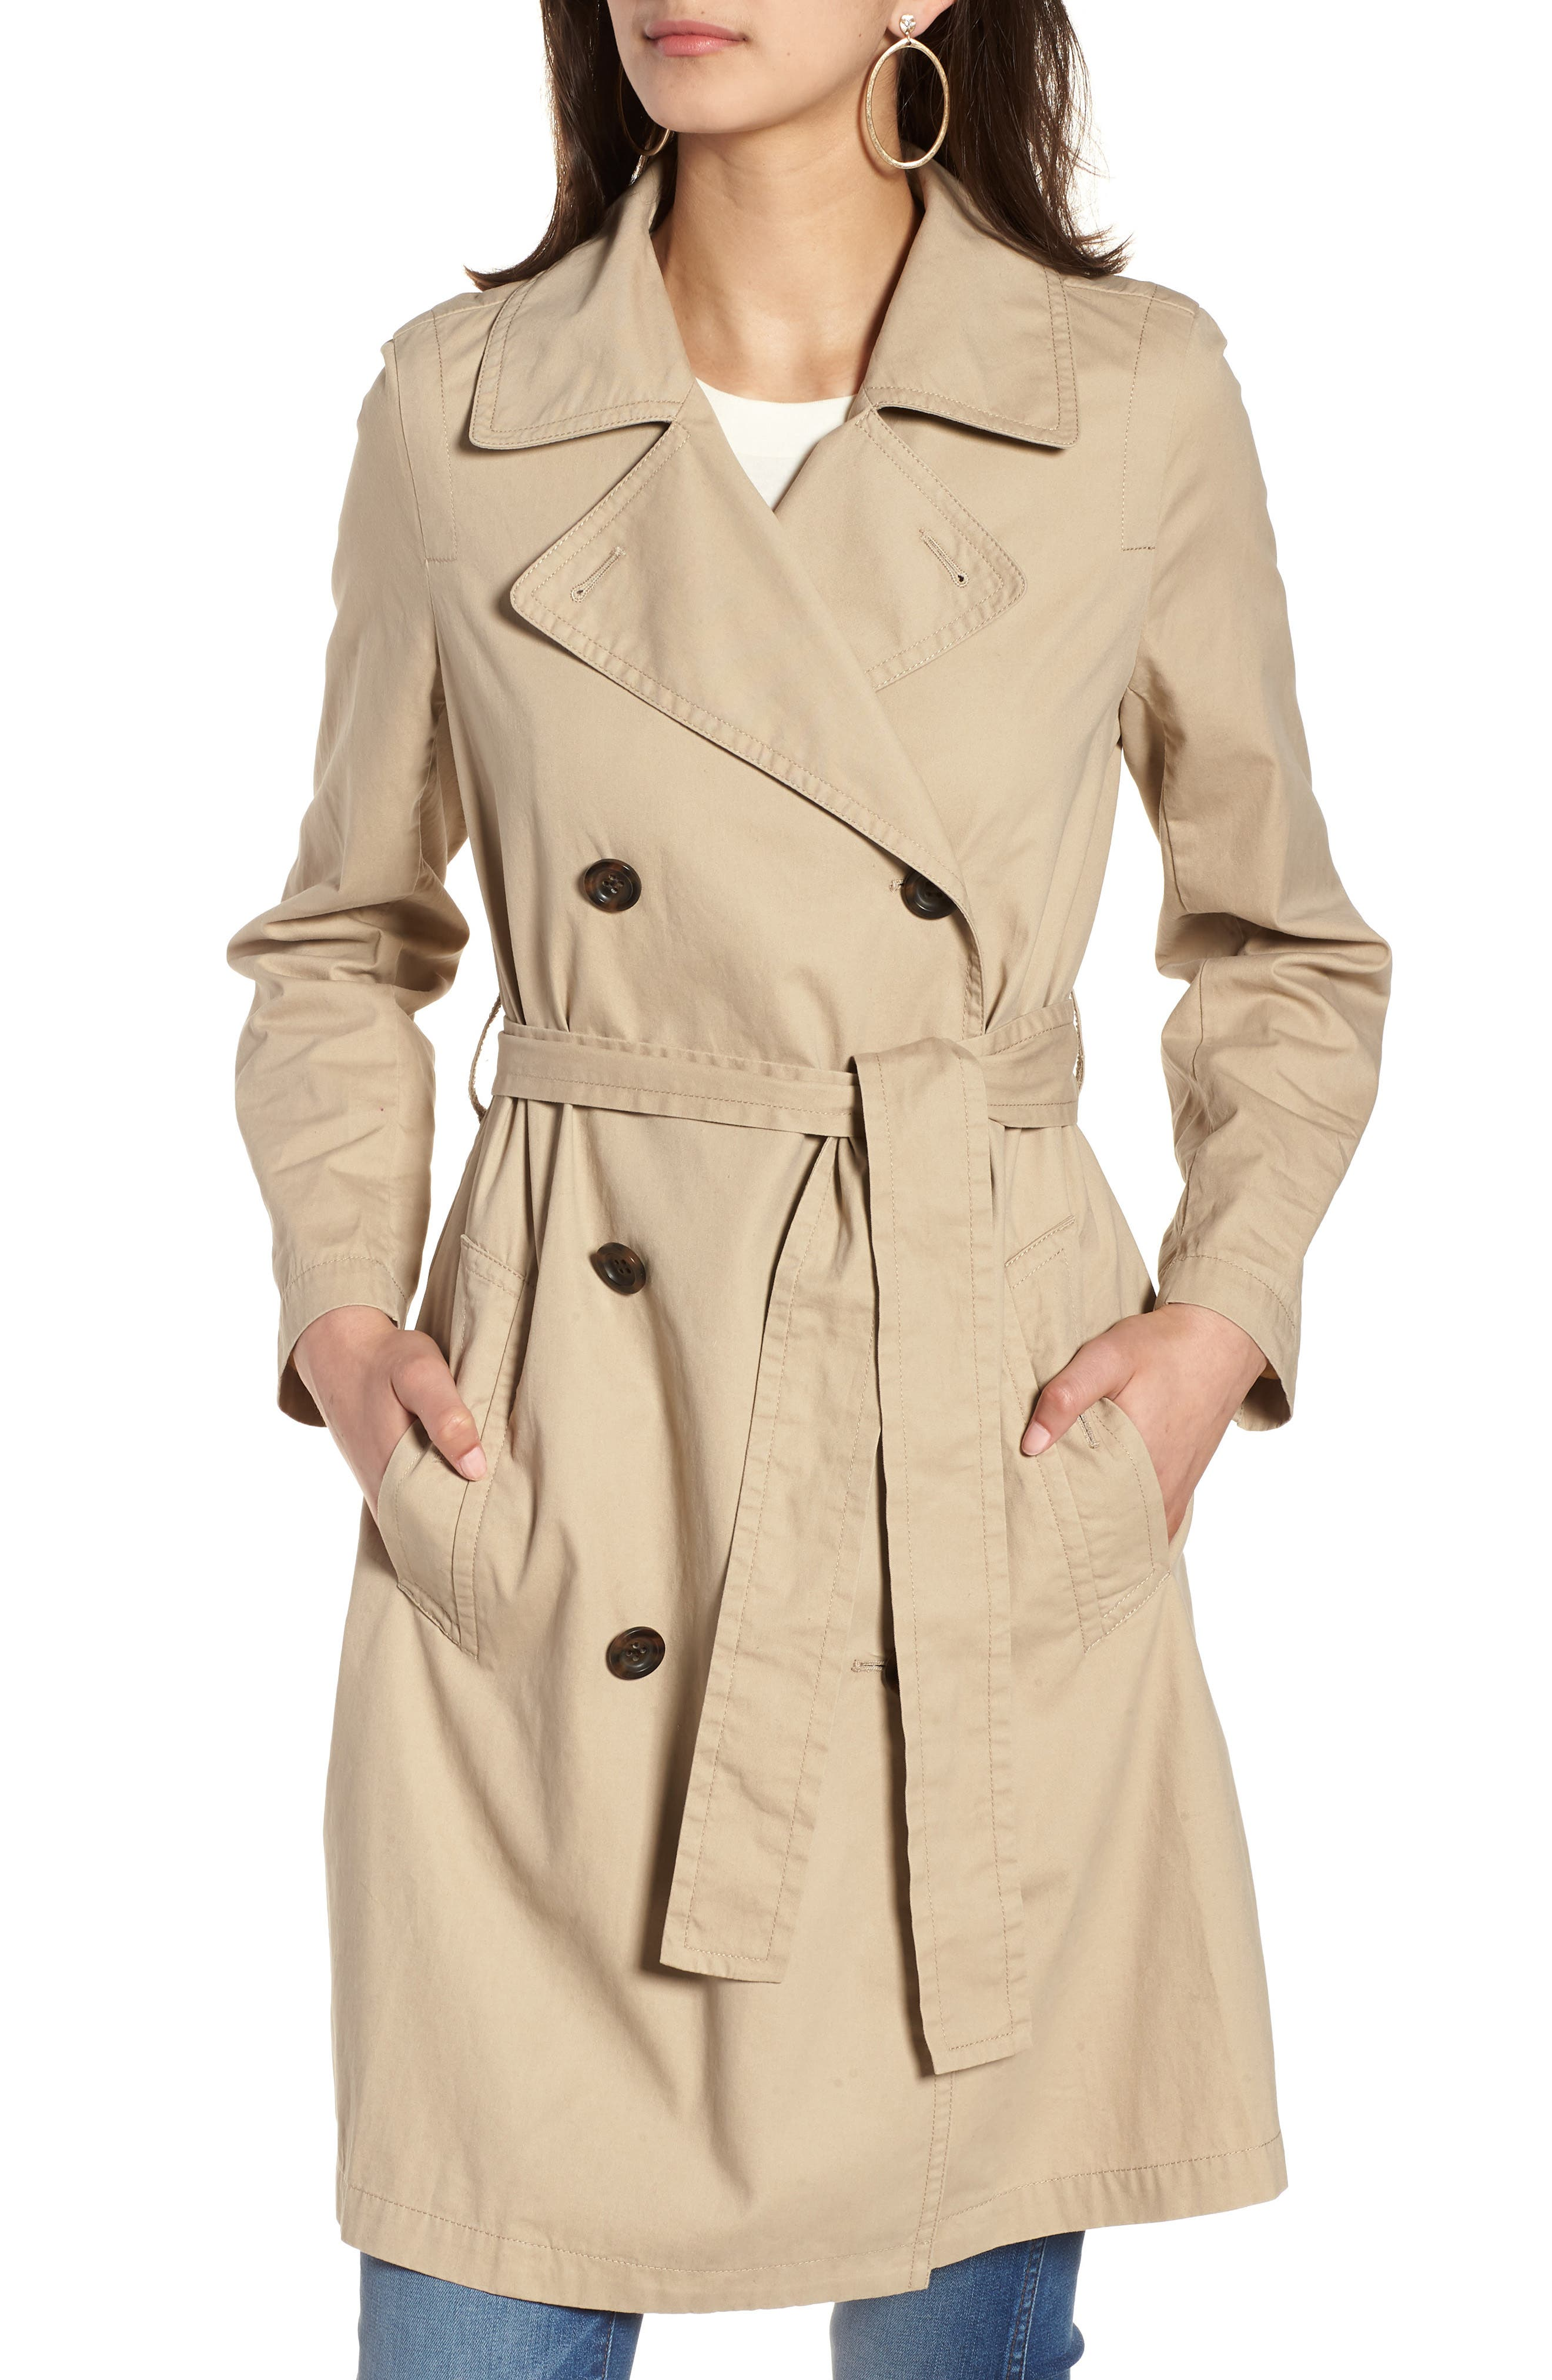 MADEWELL,                             Abroad Trench Coat,                             Alternate thumbnail 4, color,                             250